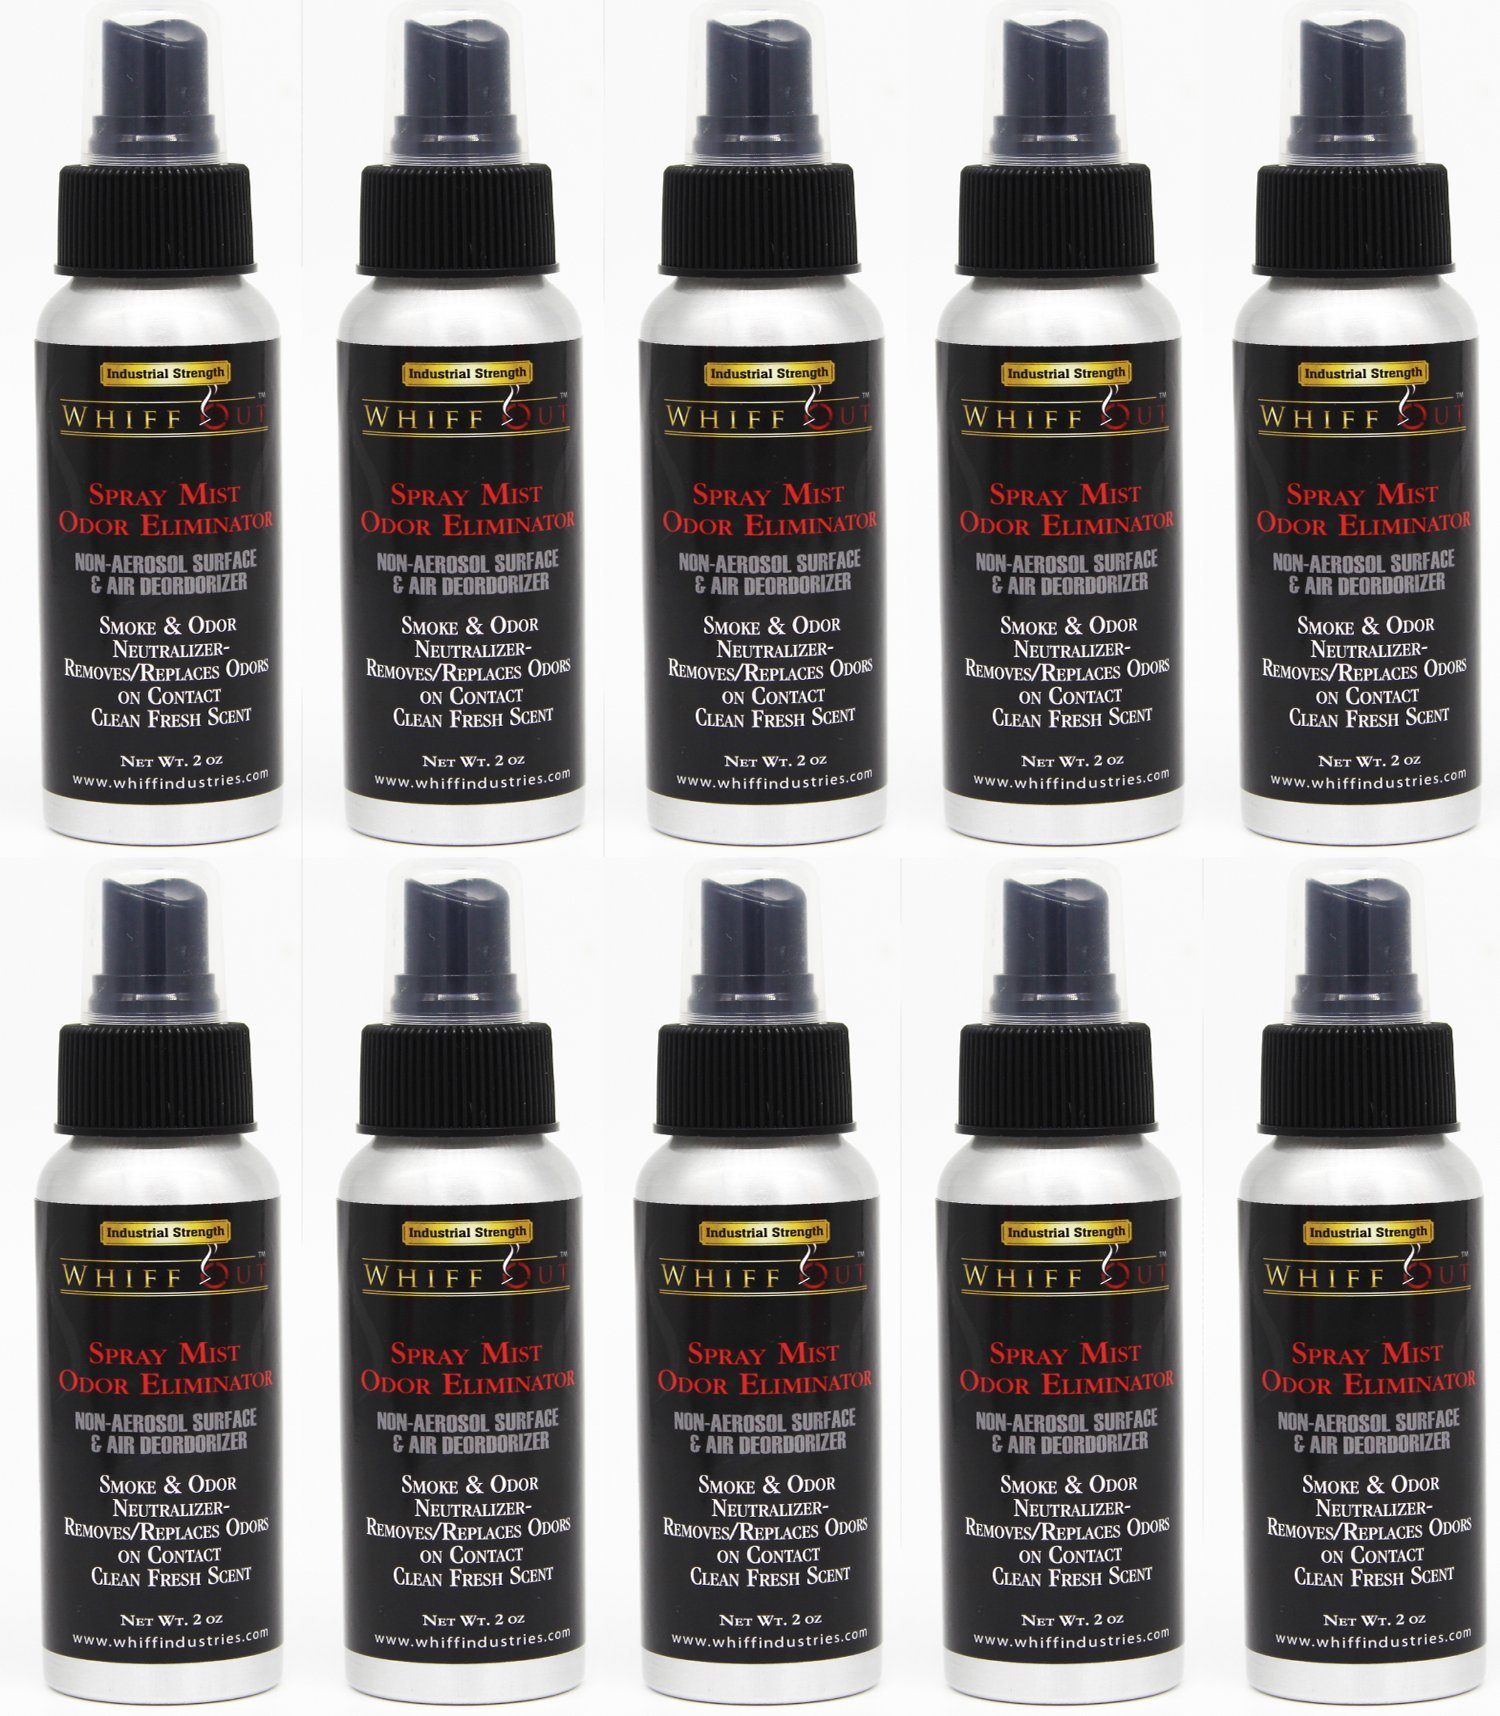 Whiff Out 2oz Spray Mist 10 Pack - Non-Aerosol Surface & Air Deodorizer & Odor Neutralizer | Removes/ Replaces Odor on Contact